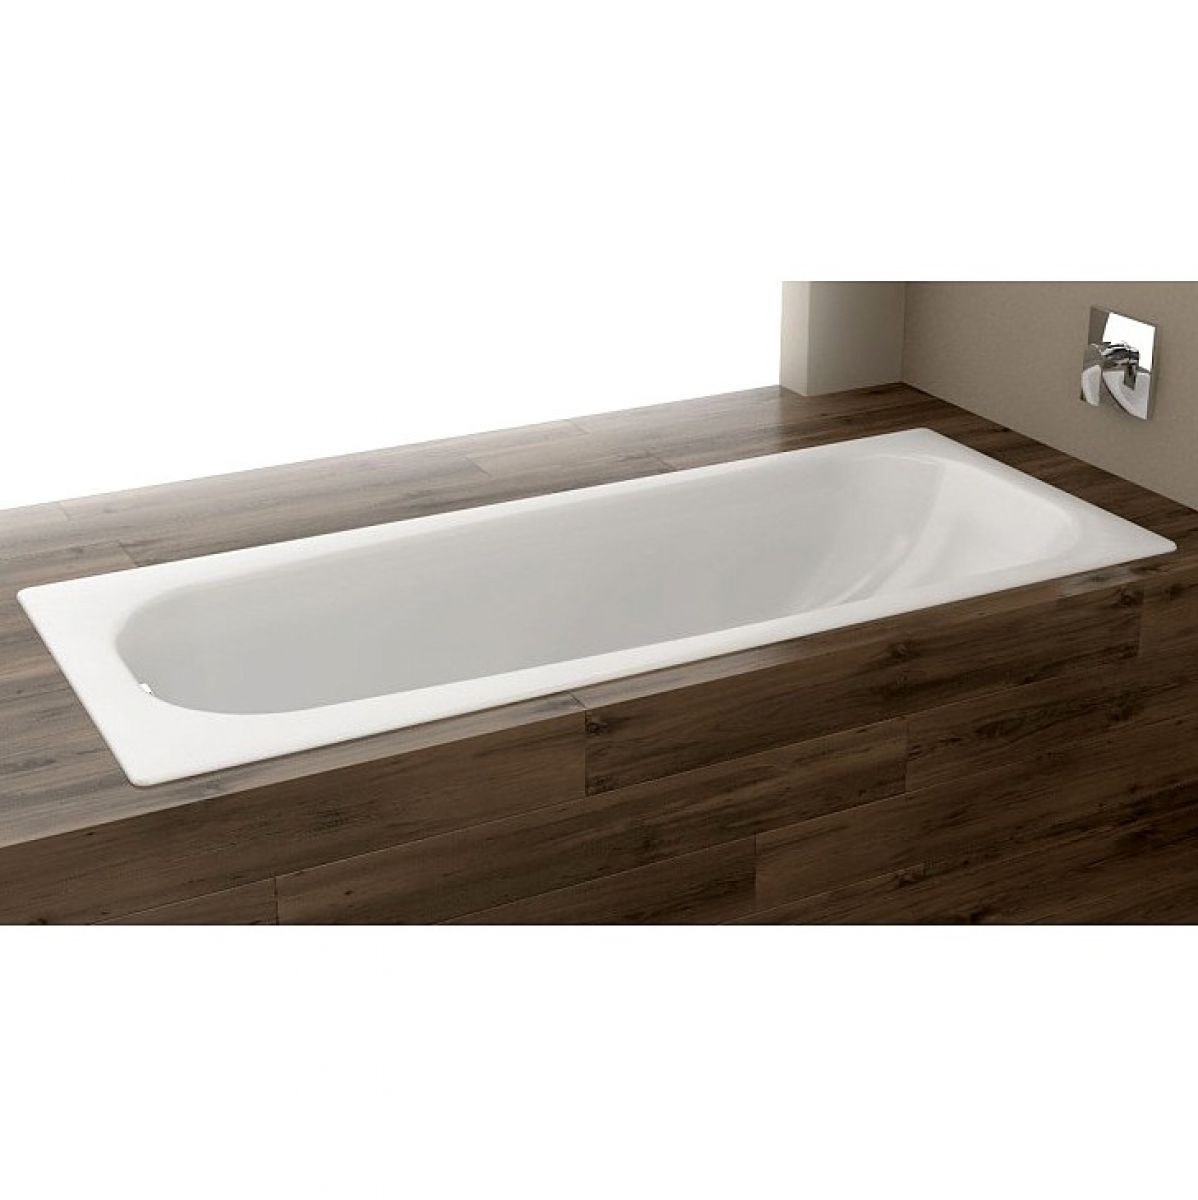 Awesome shallow baths contemporary bathroom and shower for Shallow tub shower combination